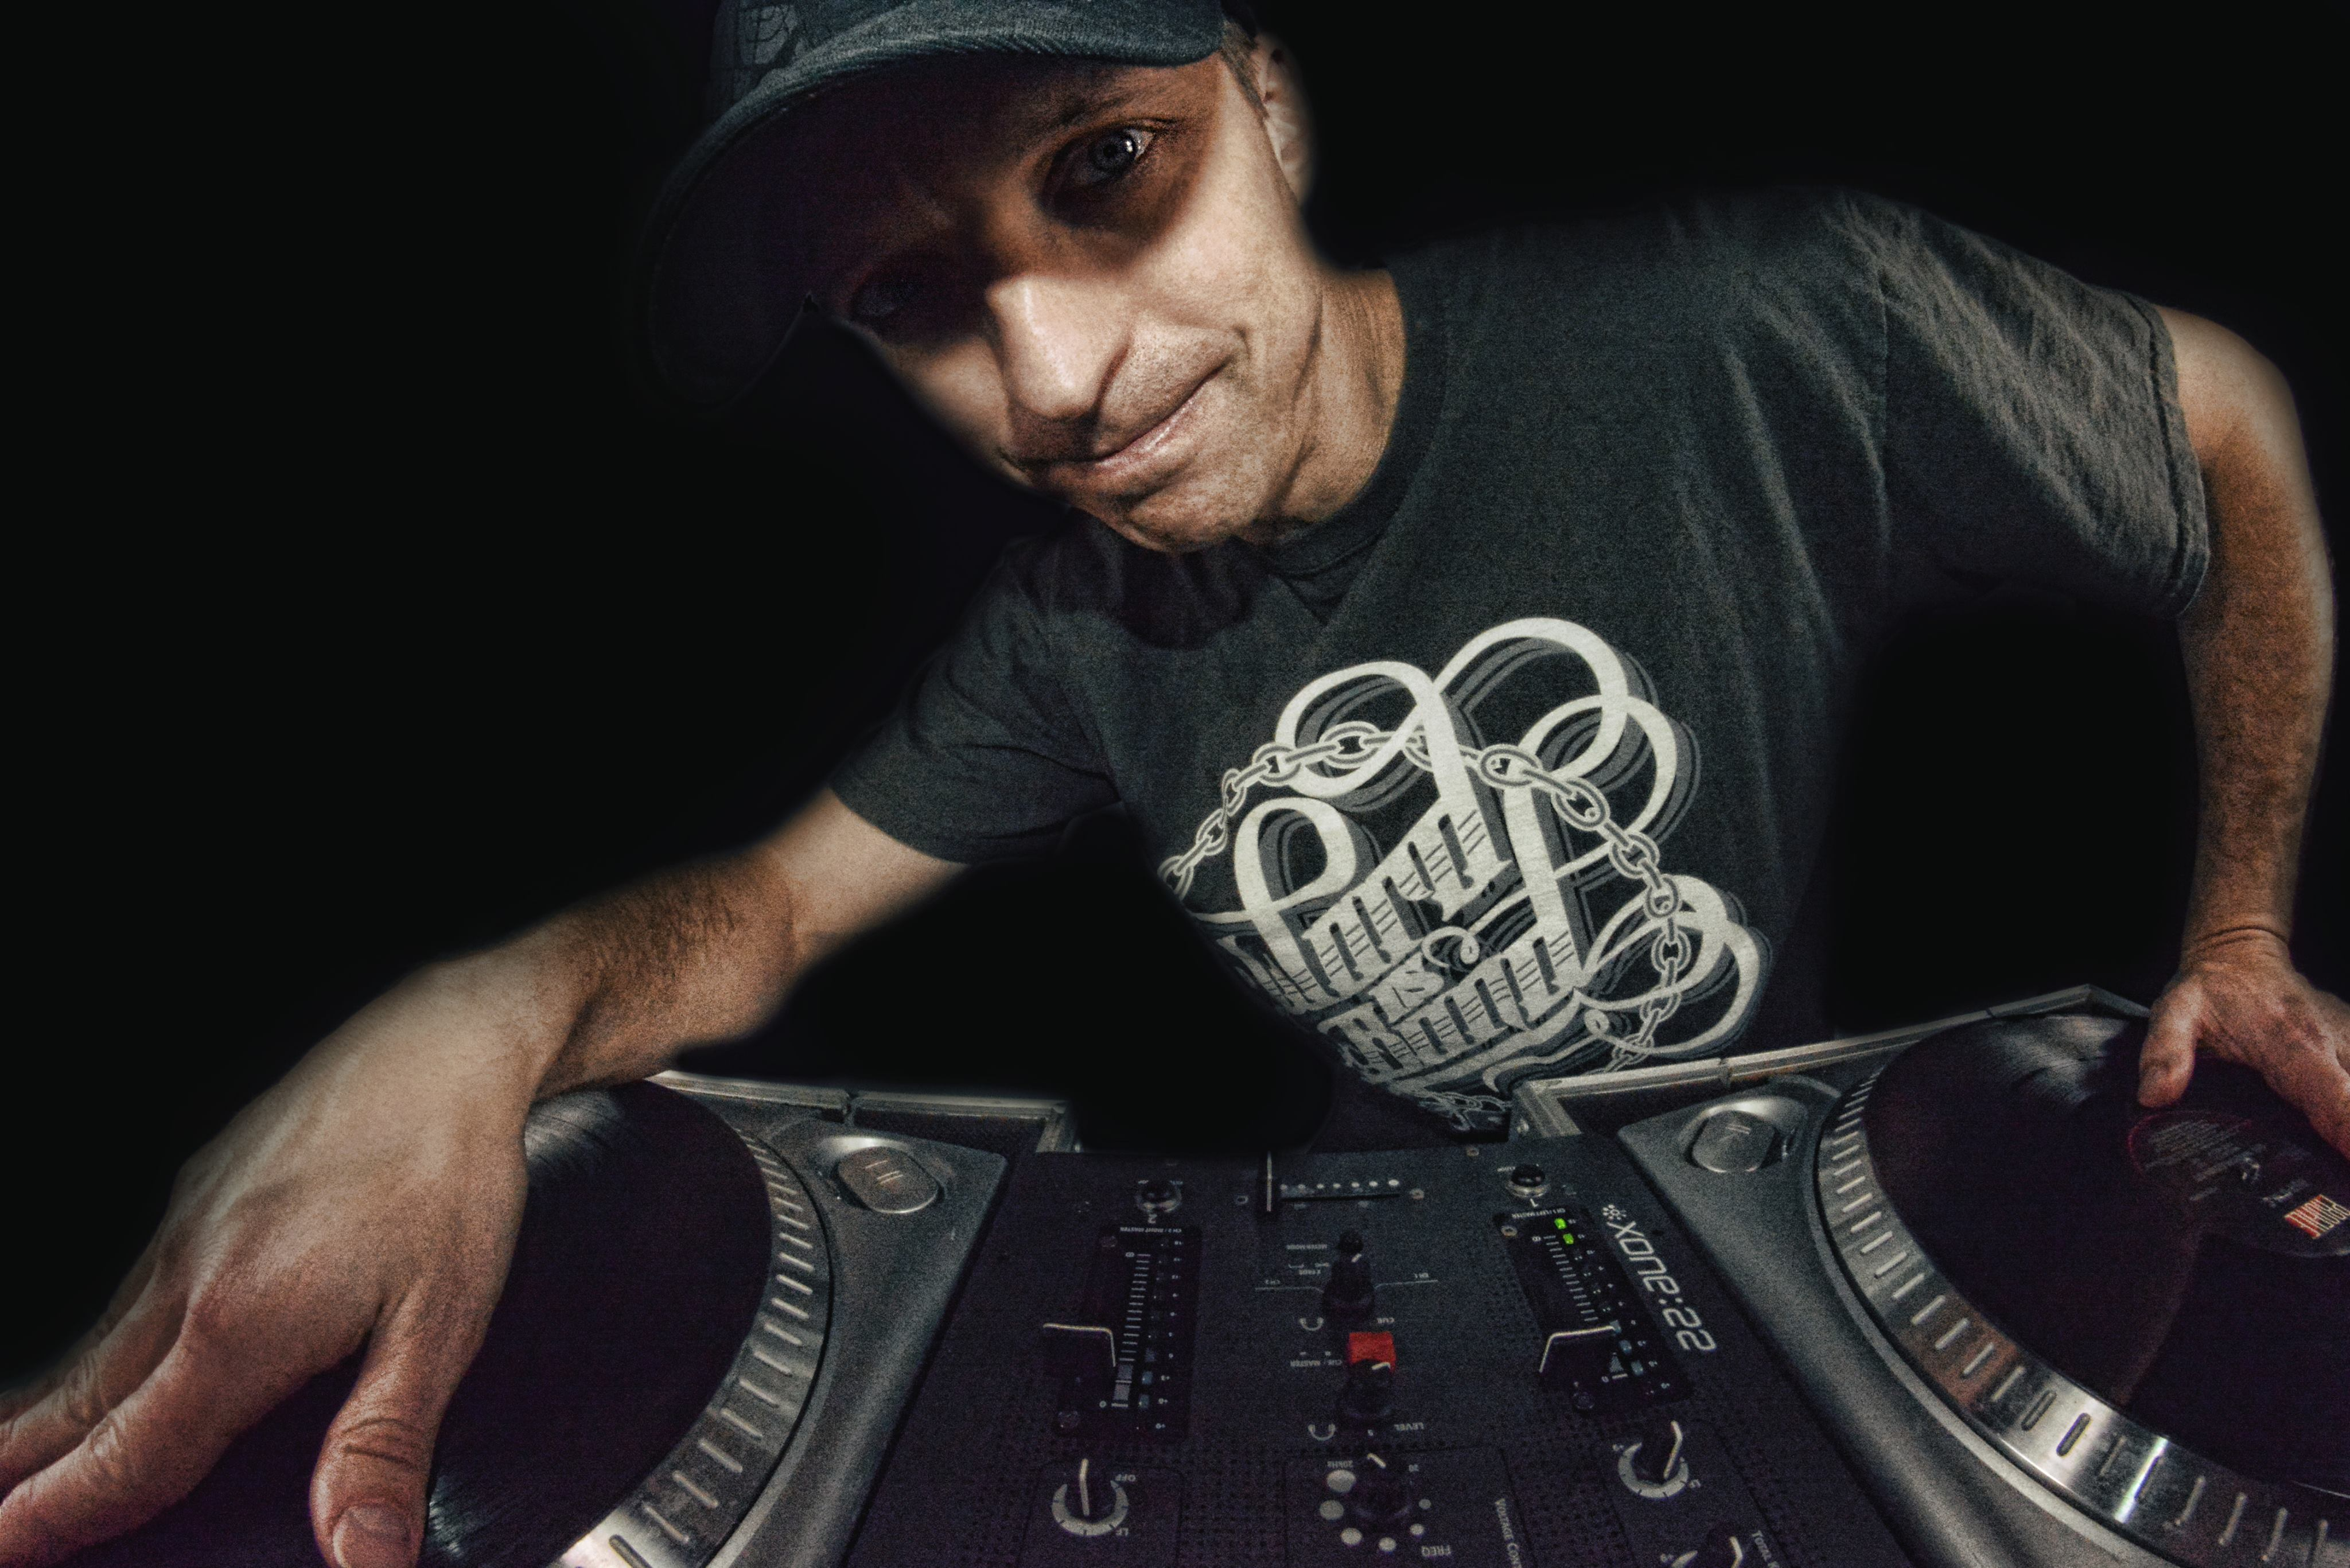 dj chase march out the shadows